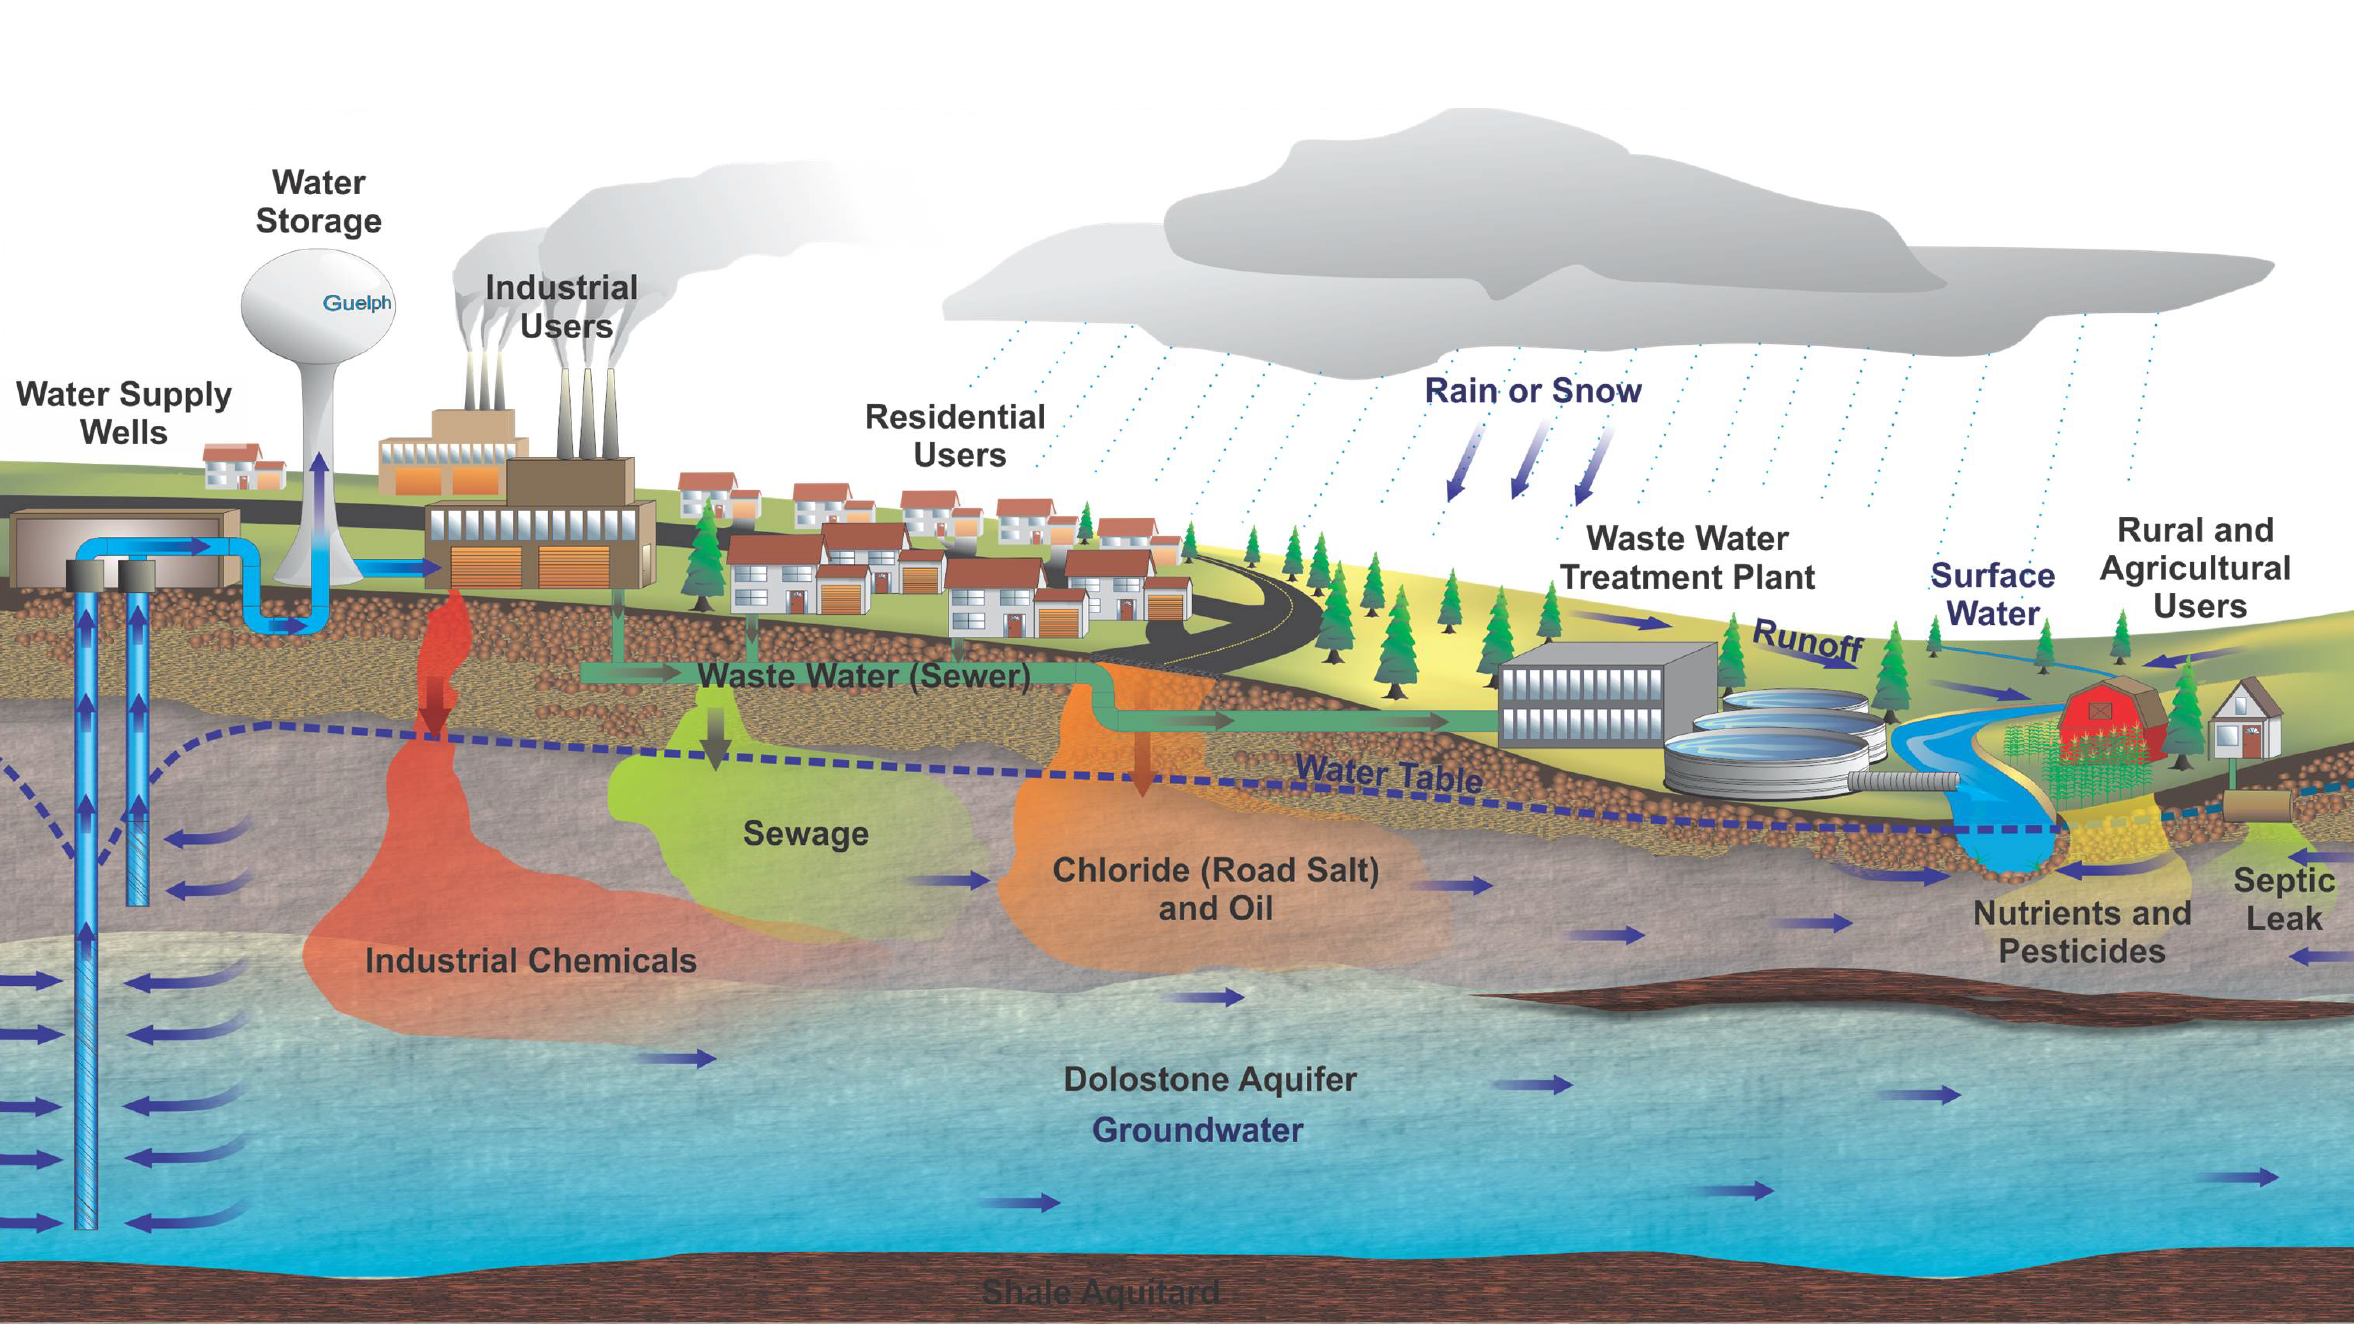 Guelph Water Cycle Diagram